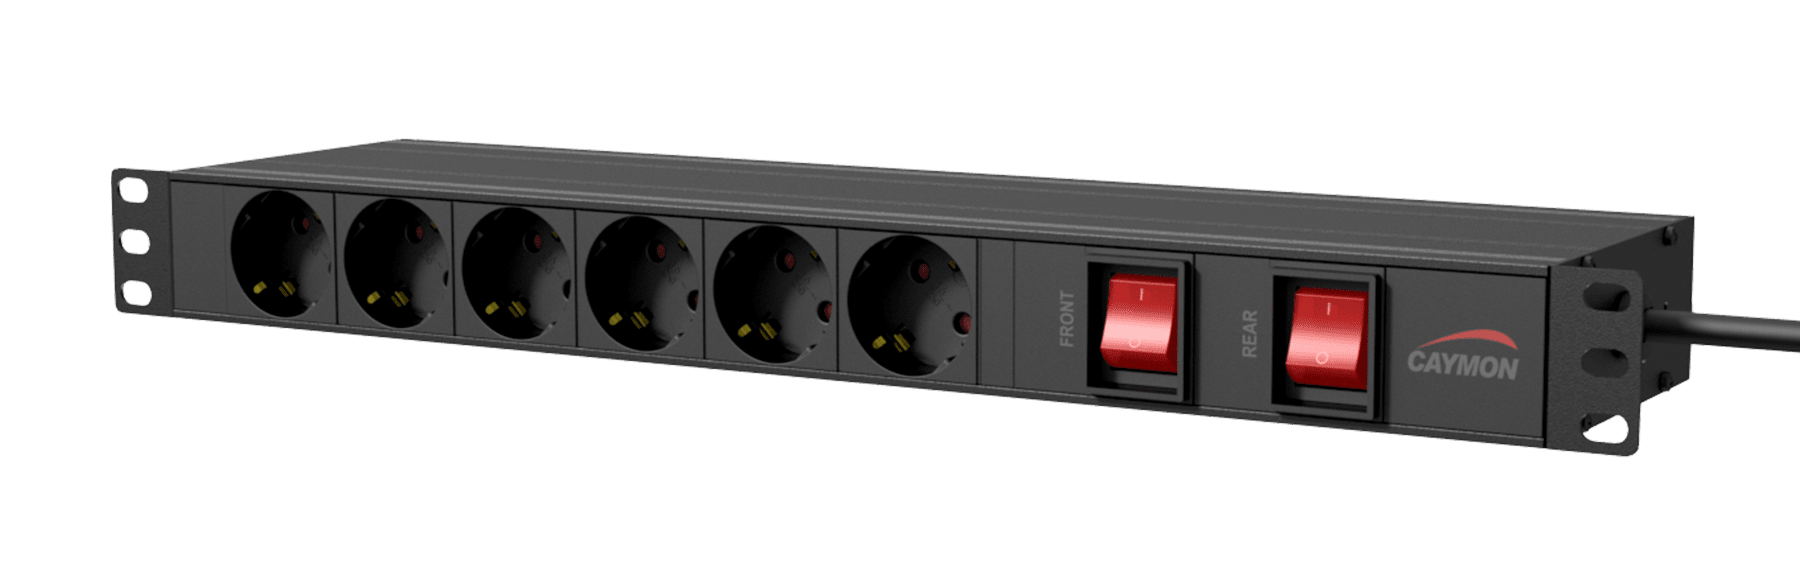 """PSR269GS - 19"""" power distribution unit - German 6 x front sockets + 9 x rear sockets - Double switched"""